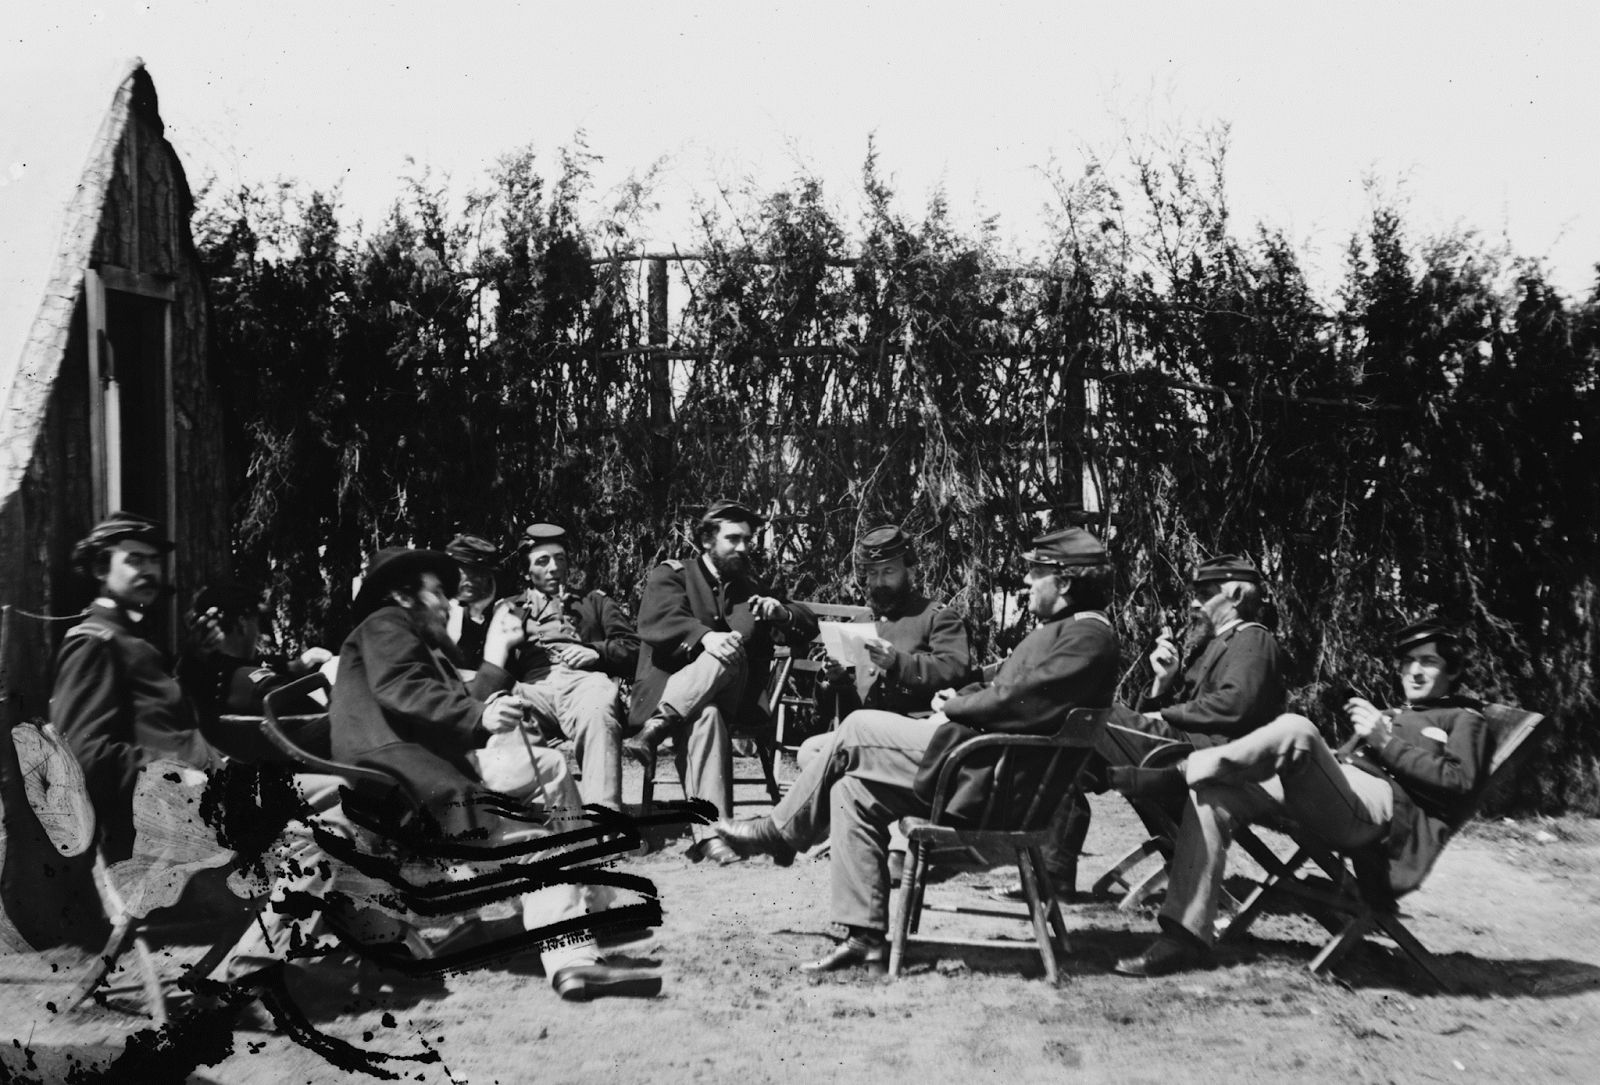 Union officers of the 1st Connecticut Heavy Artillery relaxing in camp at Fort Darling, Virginia 1865.